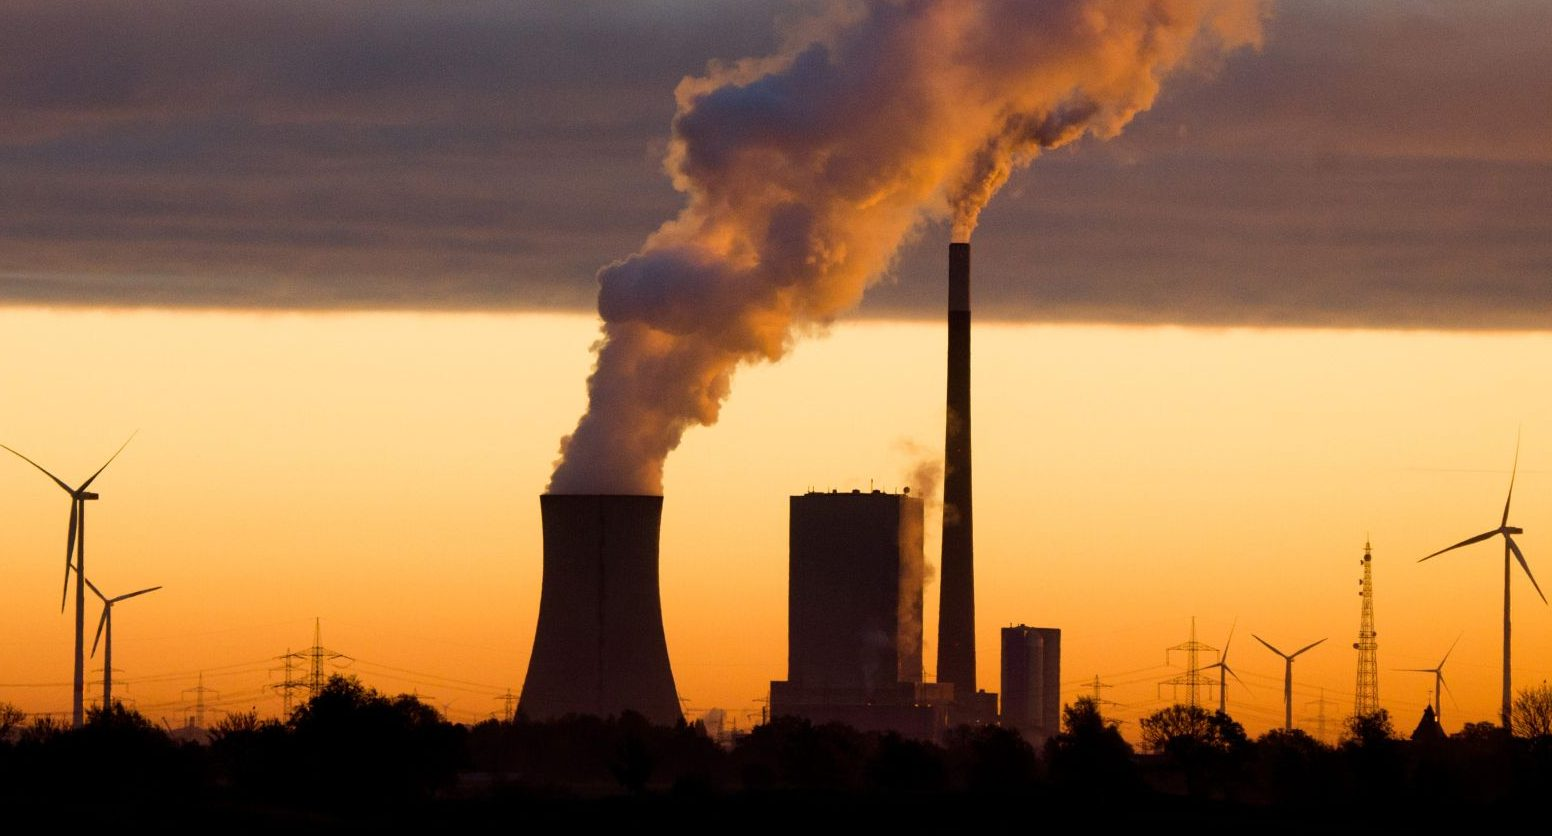 epa05615692 The sun rises behind a coal-fired power station in Hanover, Lower Saxony, Germany, 03 November 2016.  EPA/JULIAN†STRATENSCHULTE